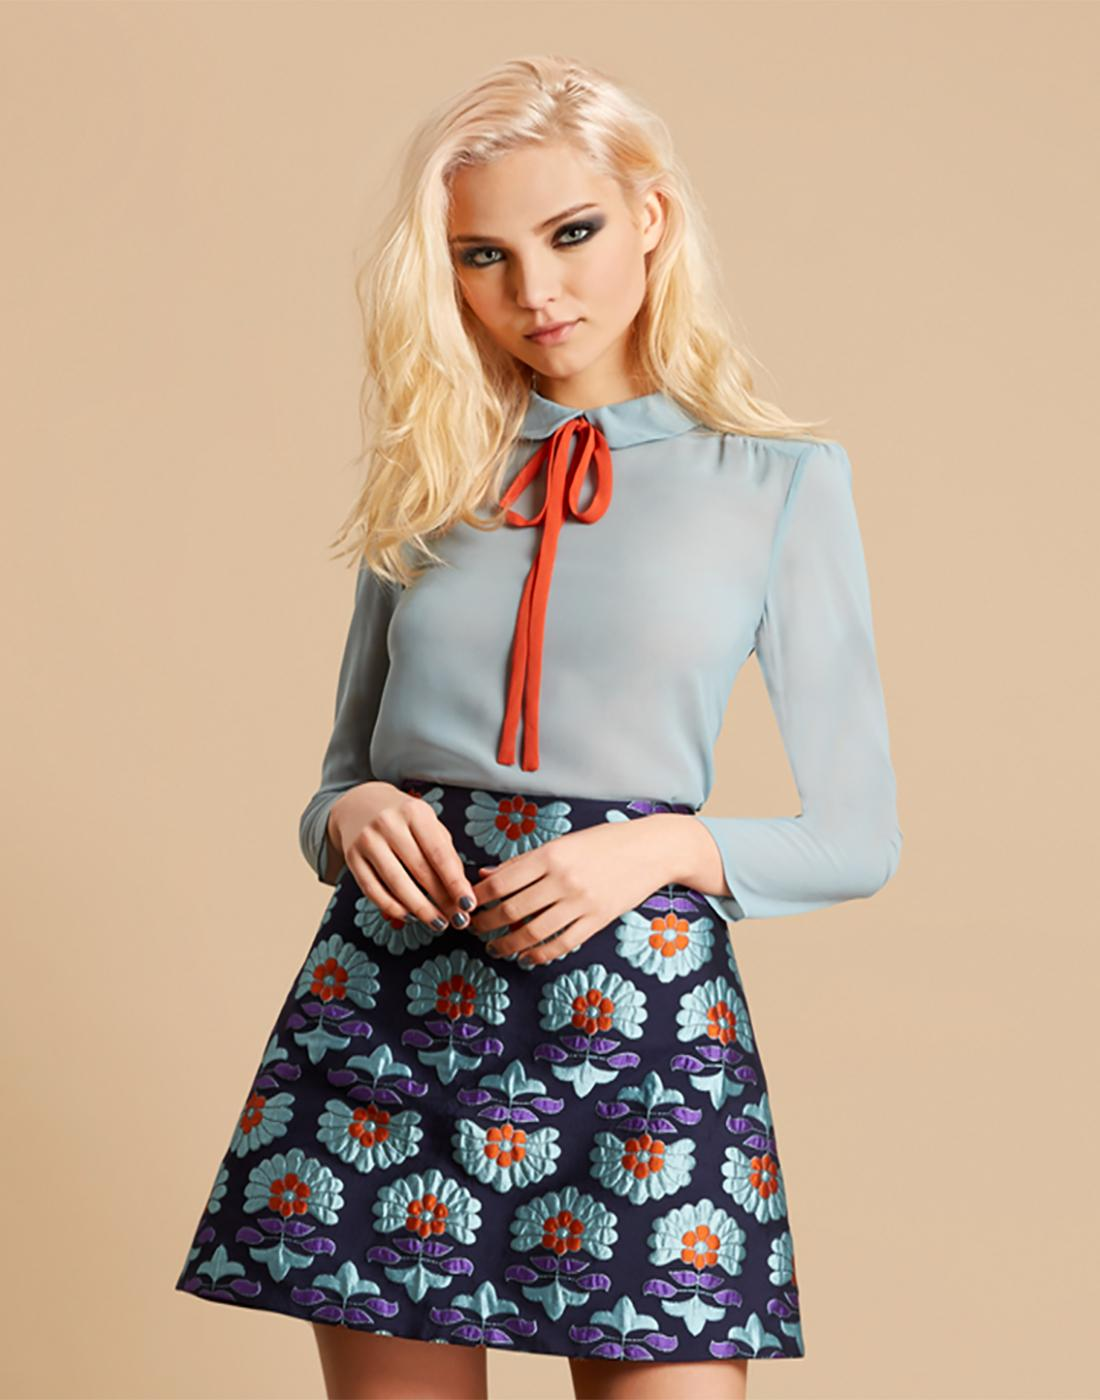 Poppy TRAFFIC PEOPLE Vintage 60s Bow Shirt - Blue